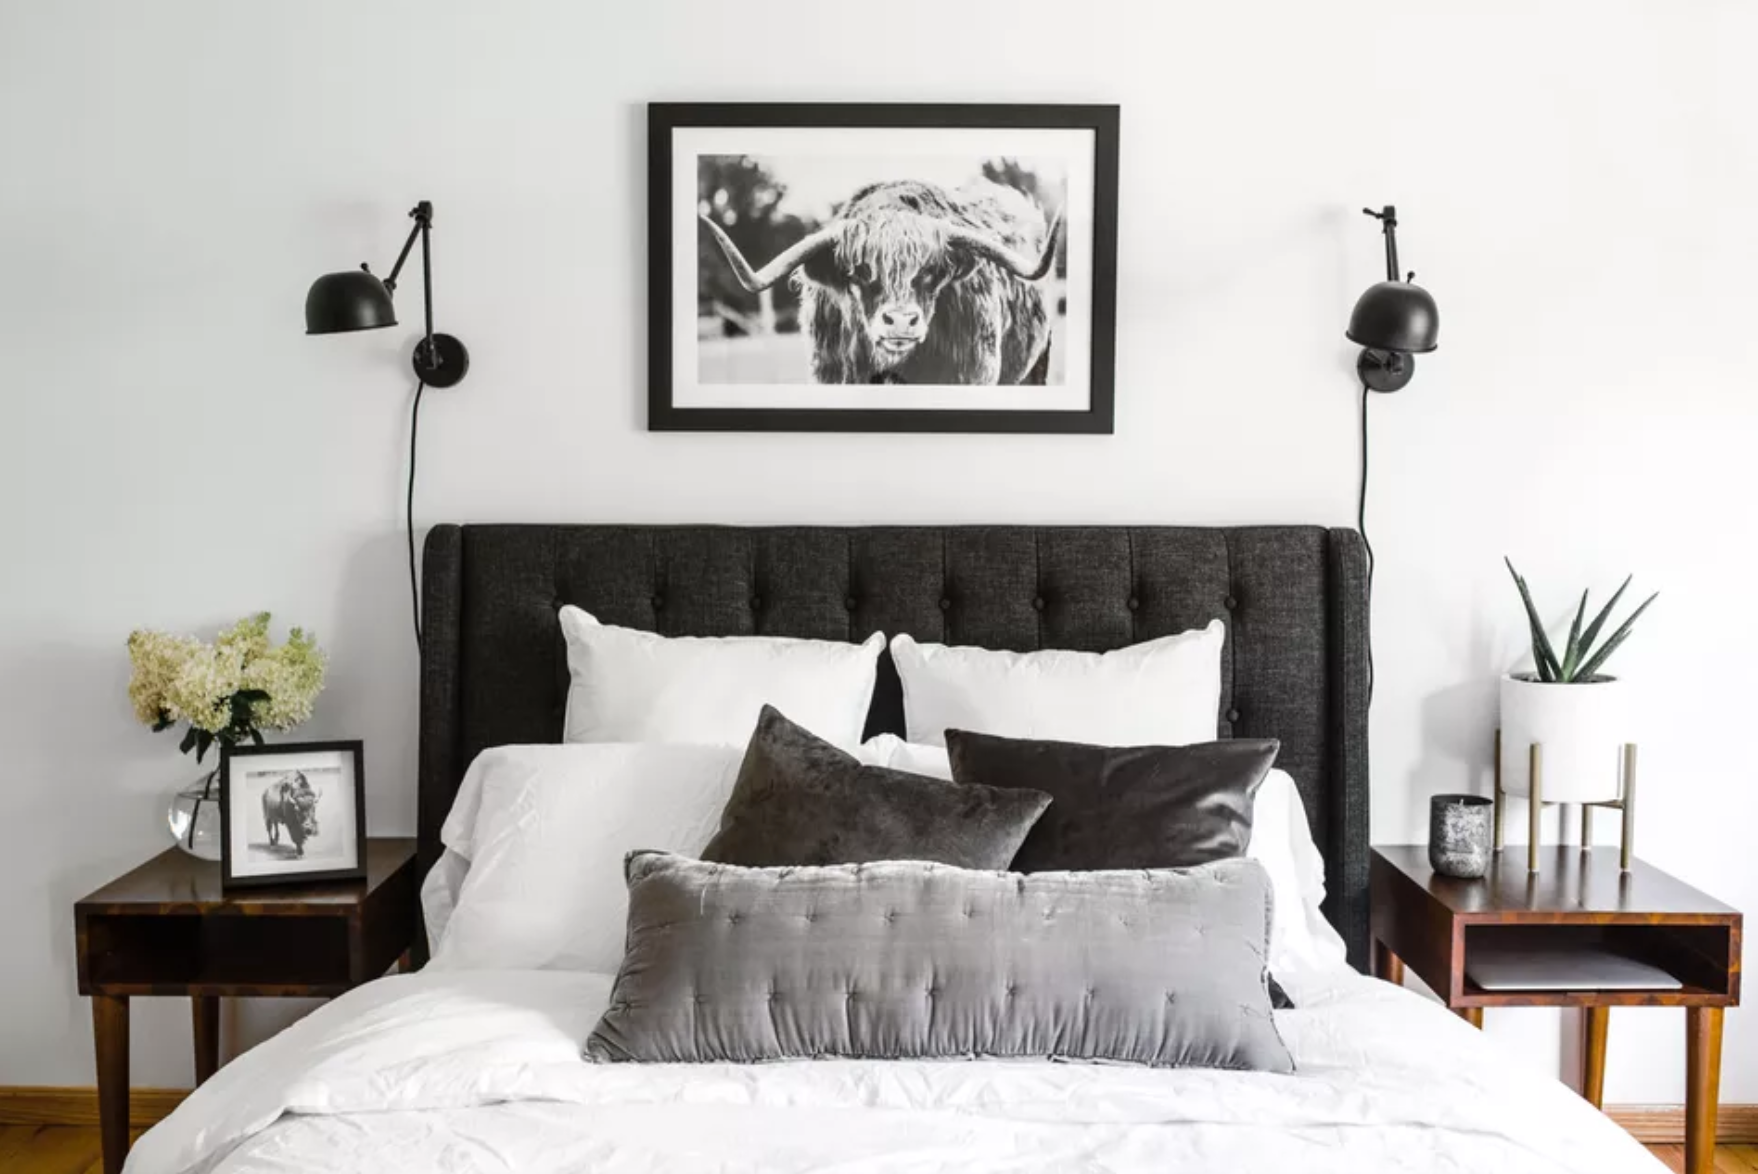 Bedroom with two nightstands with storage space beneath